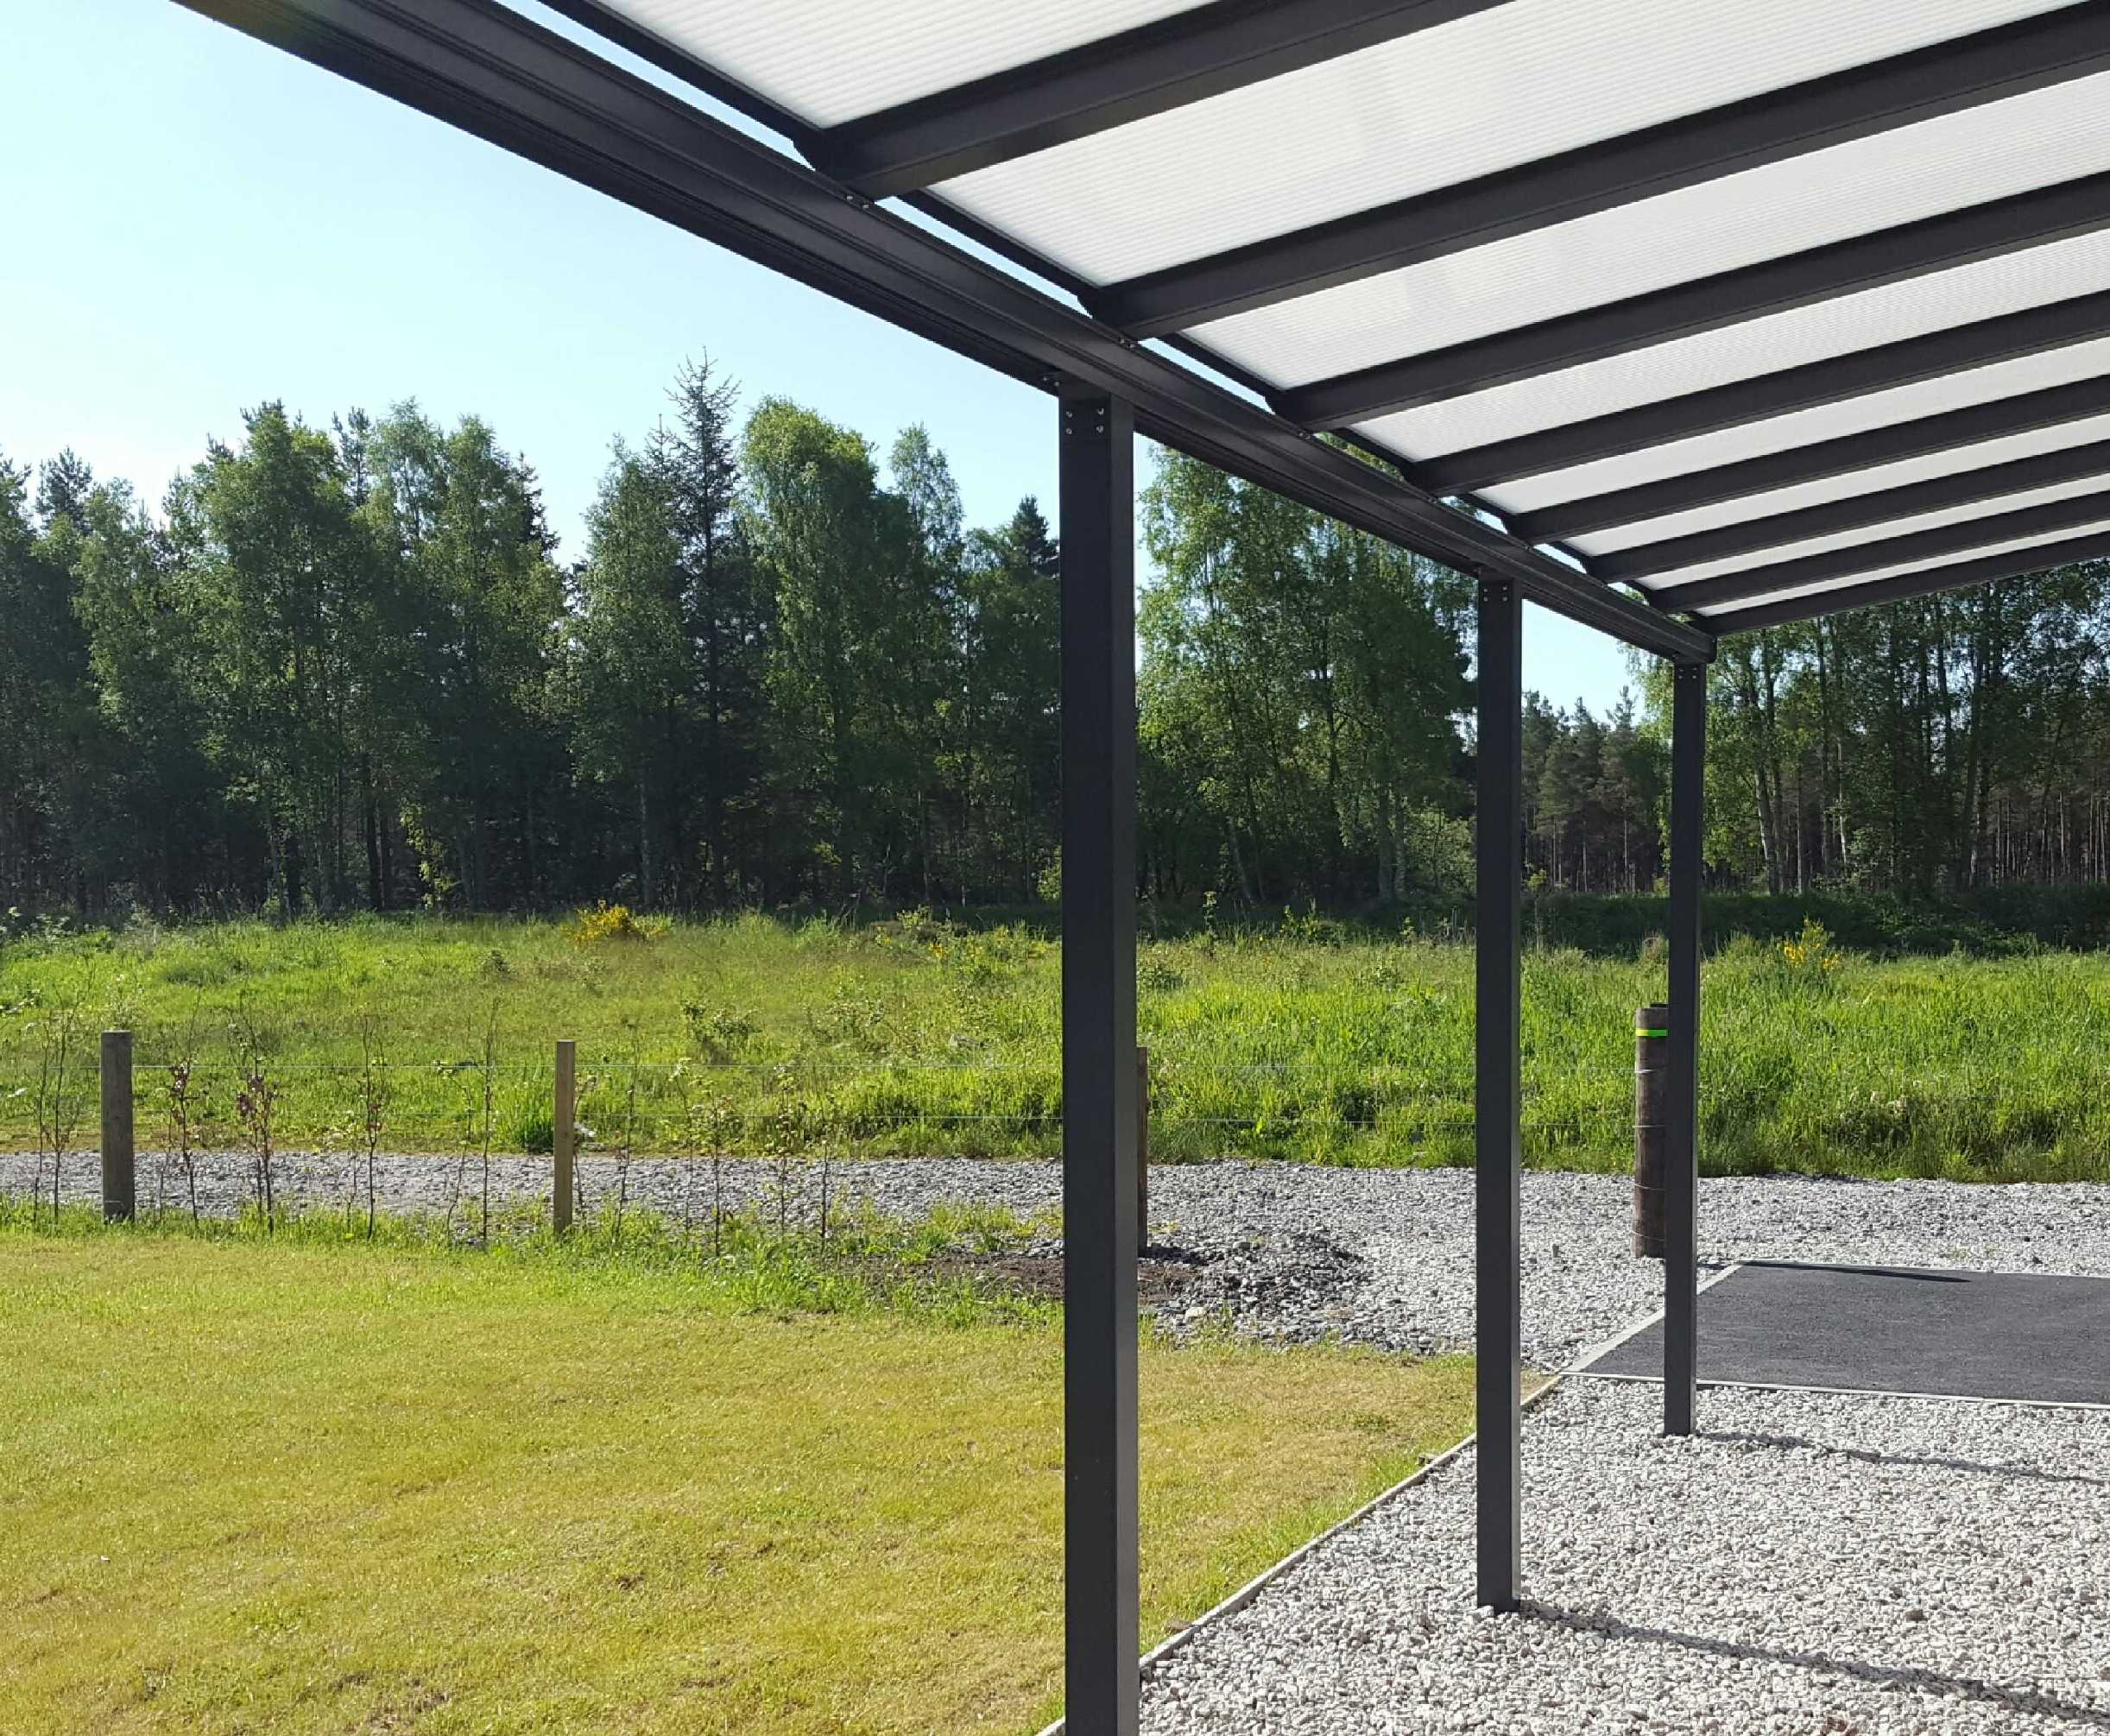 Omega Smart Lean-To Canopy, Anthracite Grey, 16mm Polycarbonate Glazing - 8.4m (W) x 1.5m (P), (4) Supporting Posts